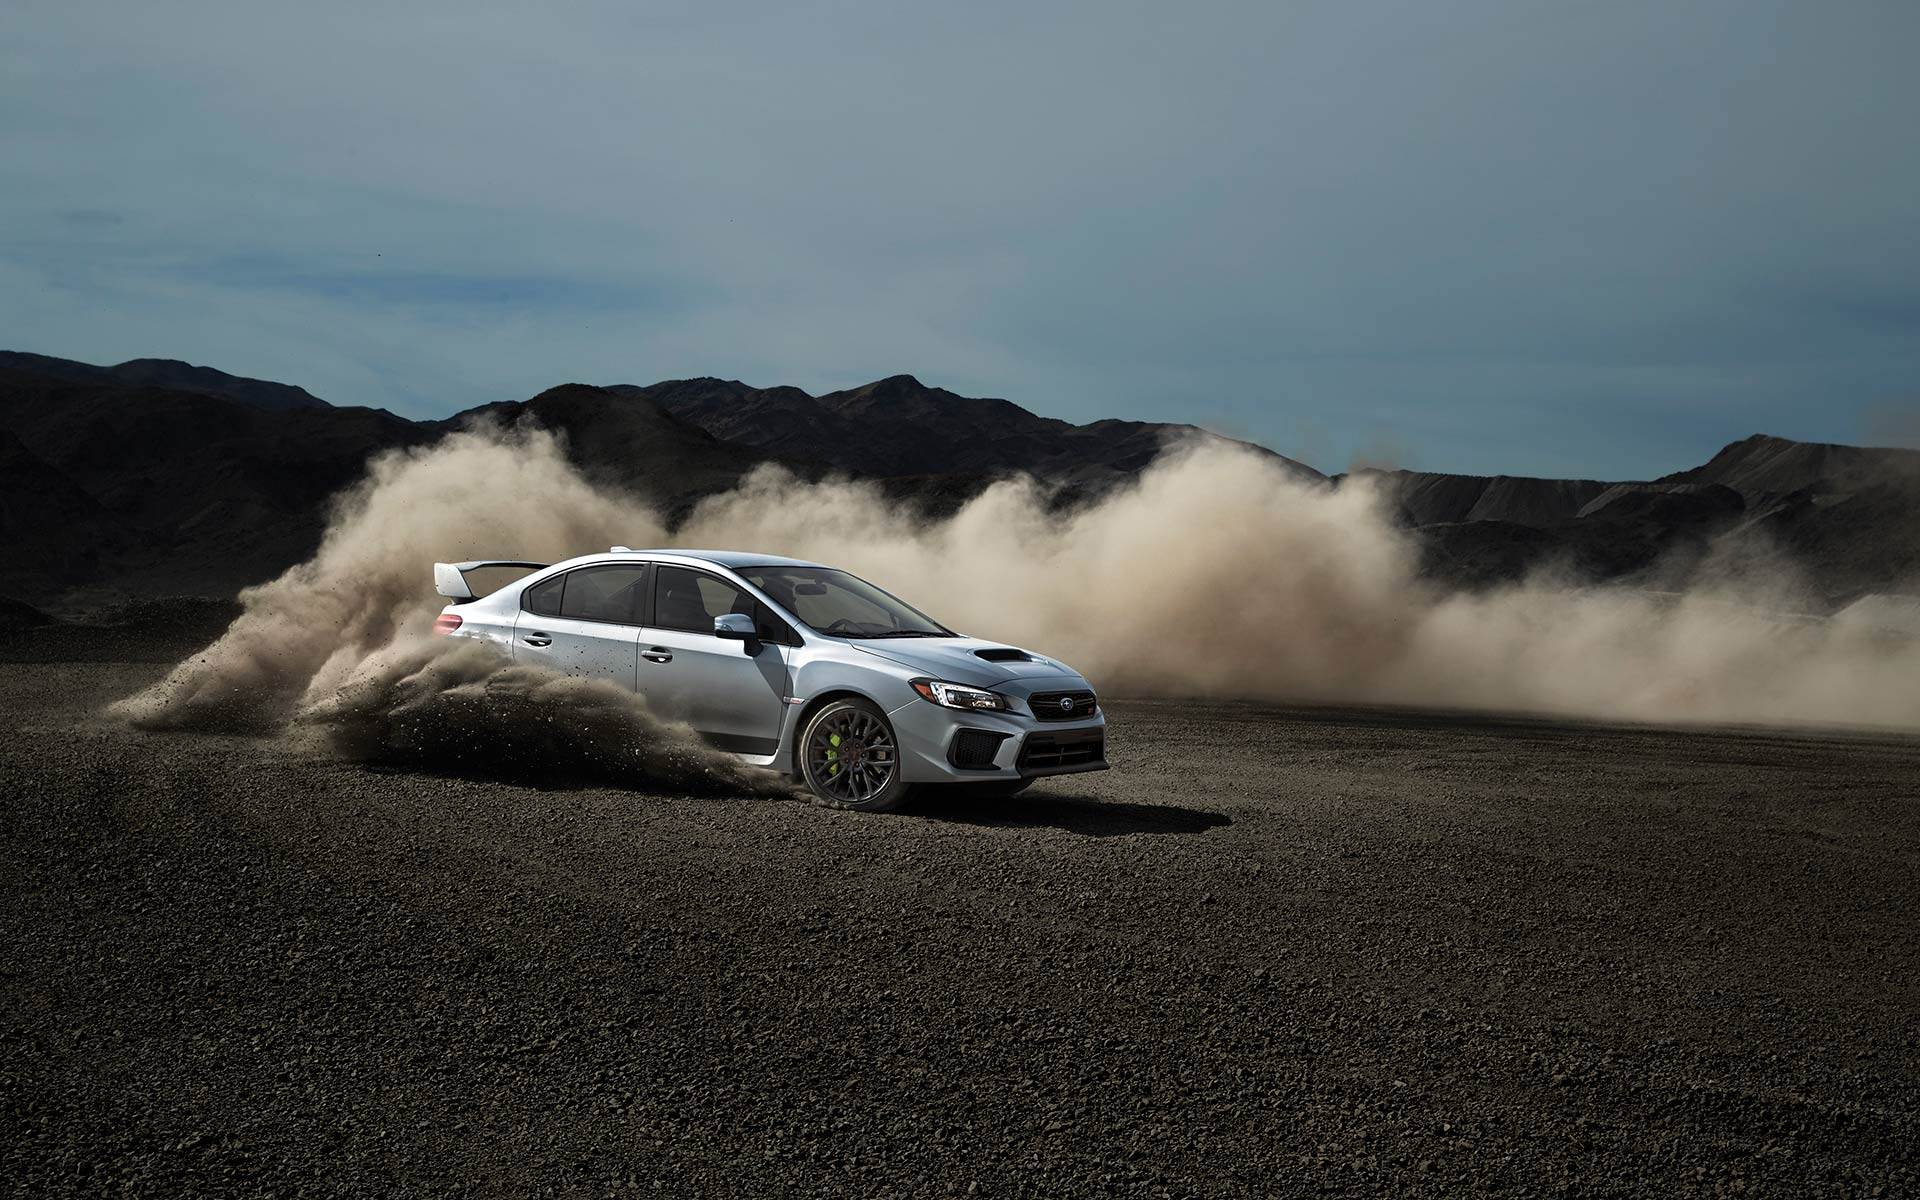 How The Subaru WRX STI Becomes a Champion On the Rally Circuit